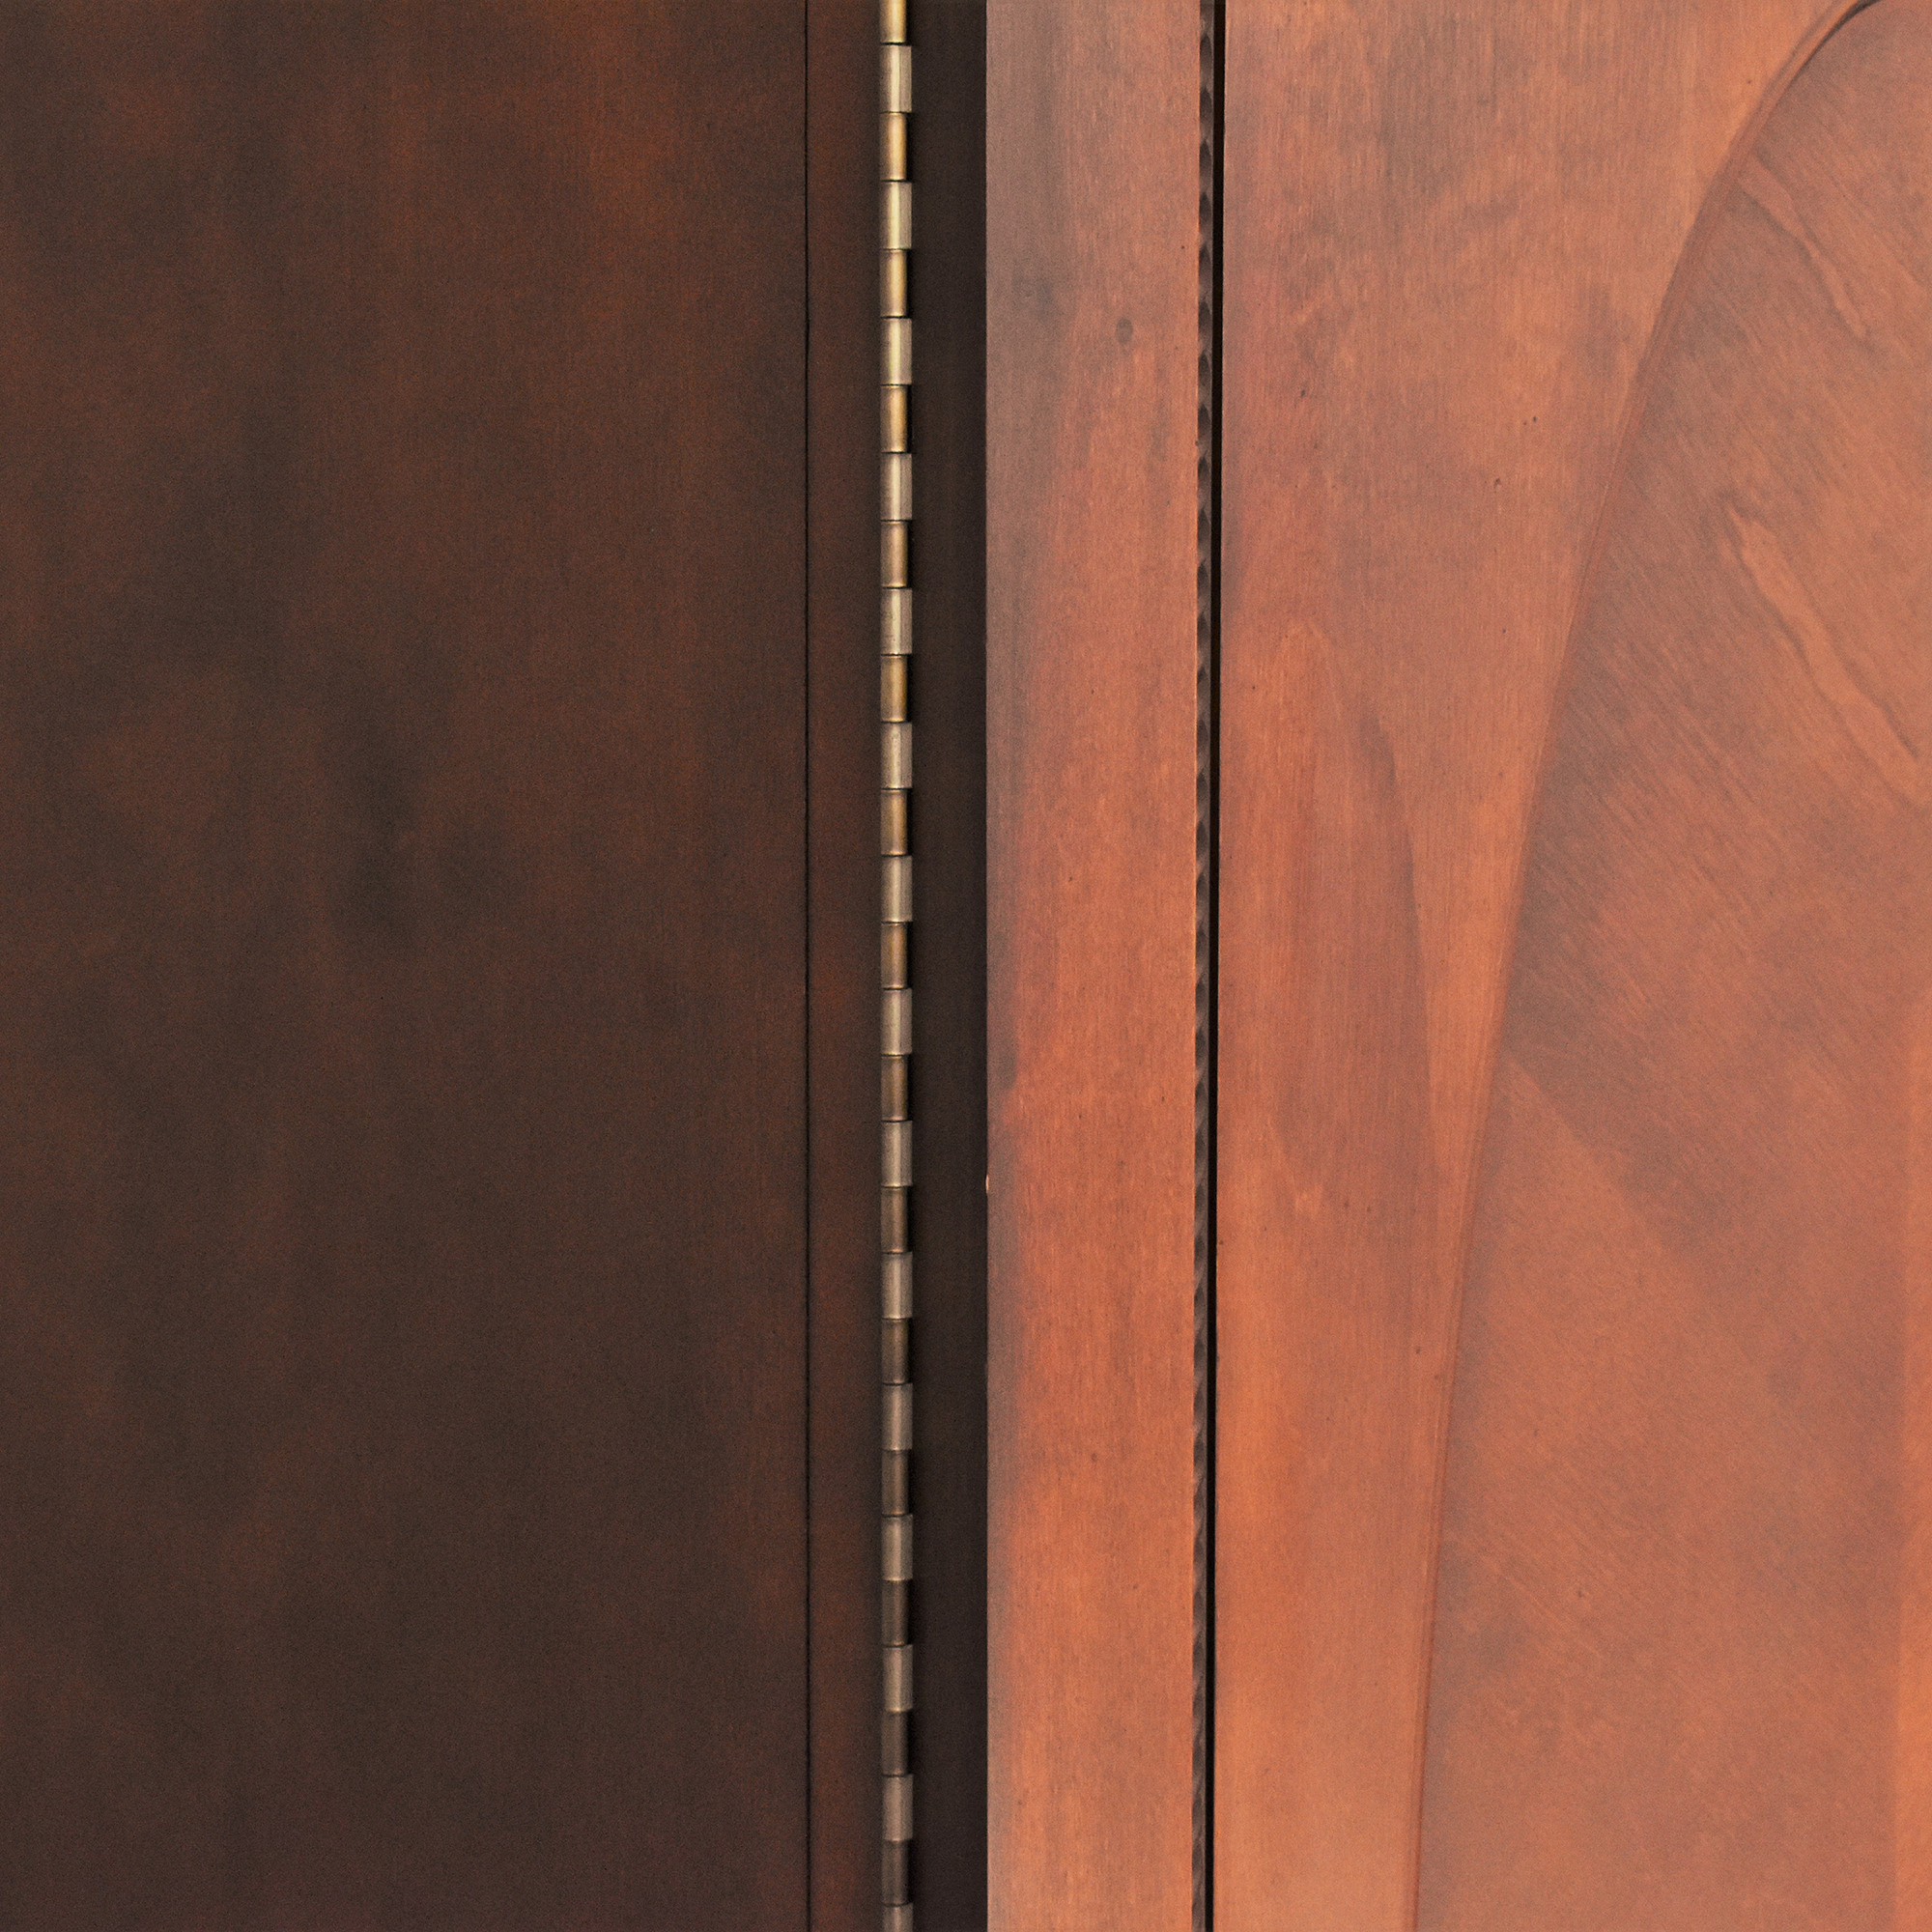 Broyhill Furniture Broyhill Furniture Two Door Armoire with Mirrors